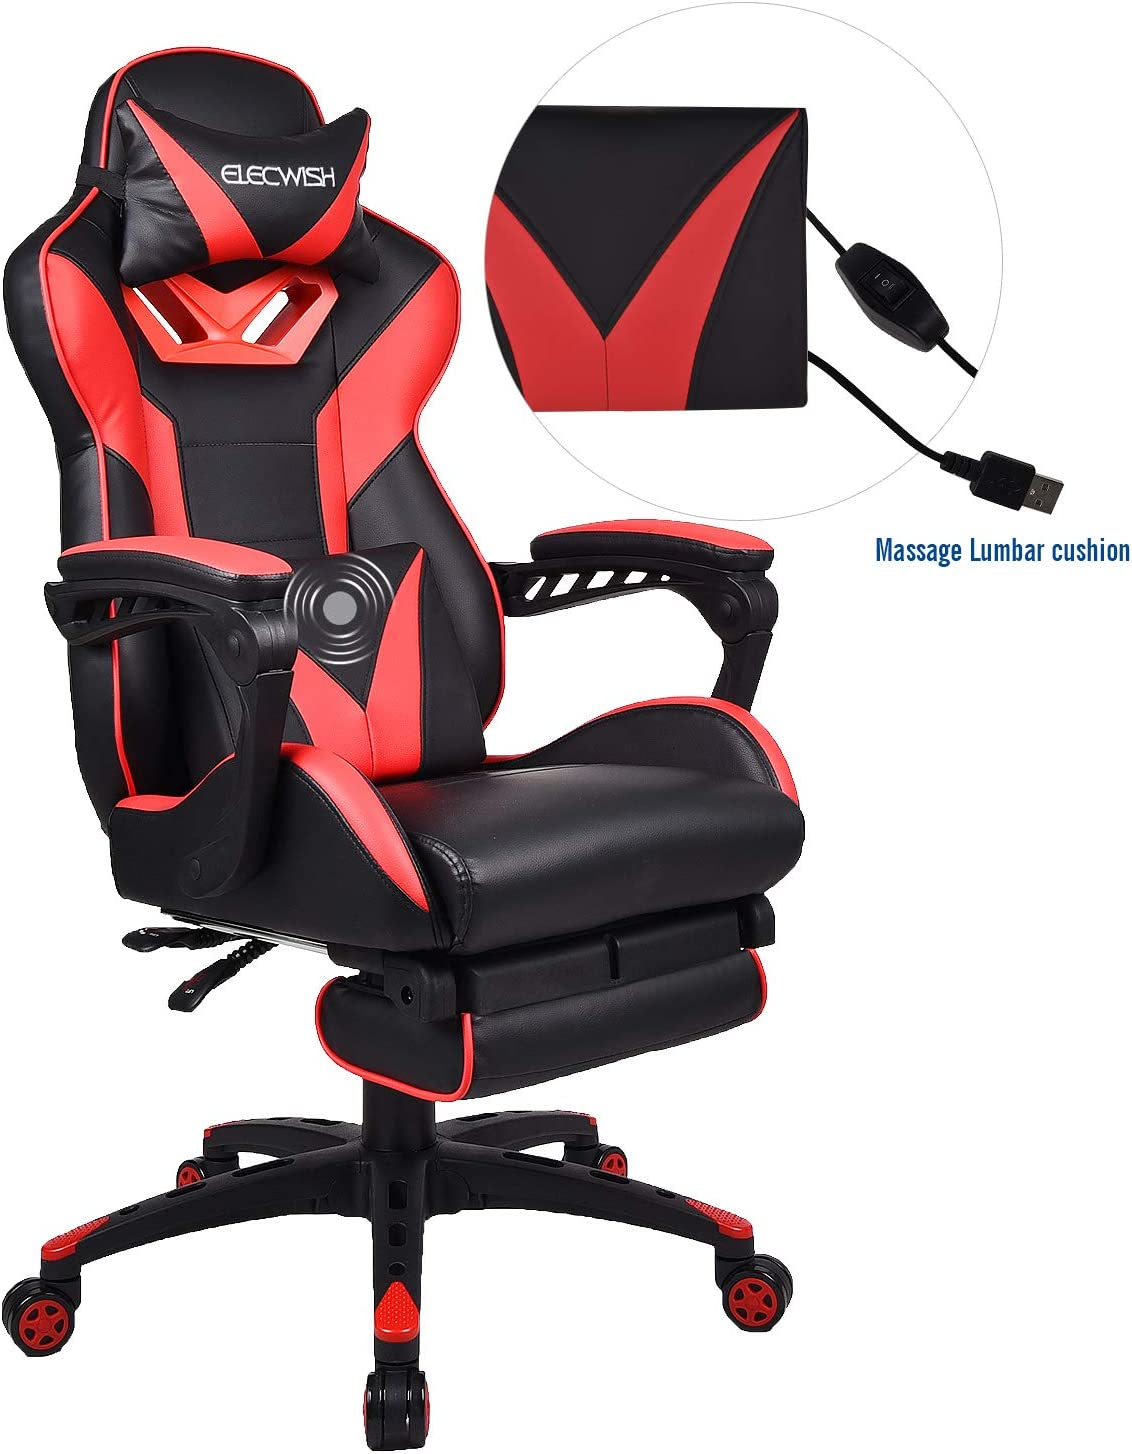 Elecwish Gaming Chair with Footrest Racing Style High-Back PU Leather Office Chair Computer Desk Chair Executive and Ergonomic Style Swivel Chair with Headrest and Massage Lumbar Support Red